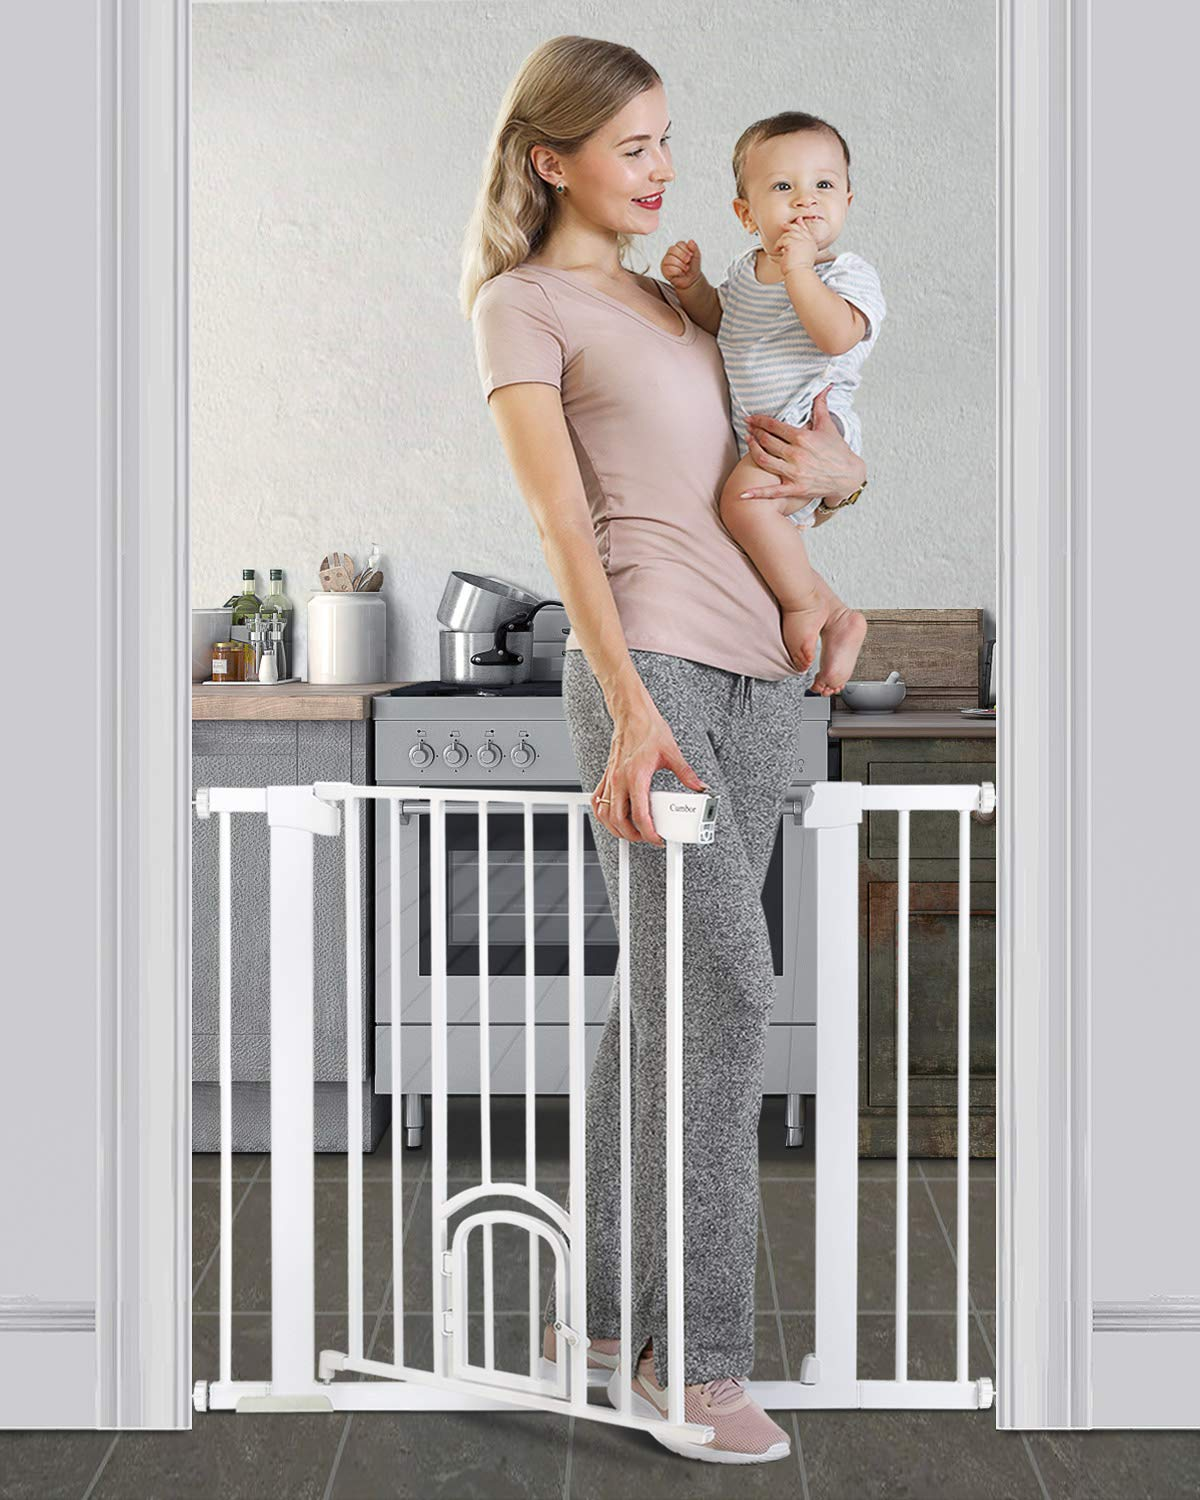 Cumbor 40.6 Auto Close Safety Baby Gate with Arch Cat Door, Extra Wide Durability Pet Gate for Dog, Easy Walk Thru Child Gate for Stairs,Doorways. Included 2.75-Inch and 5.5-Inch Extension